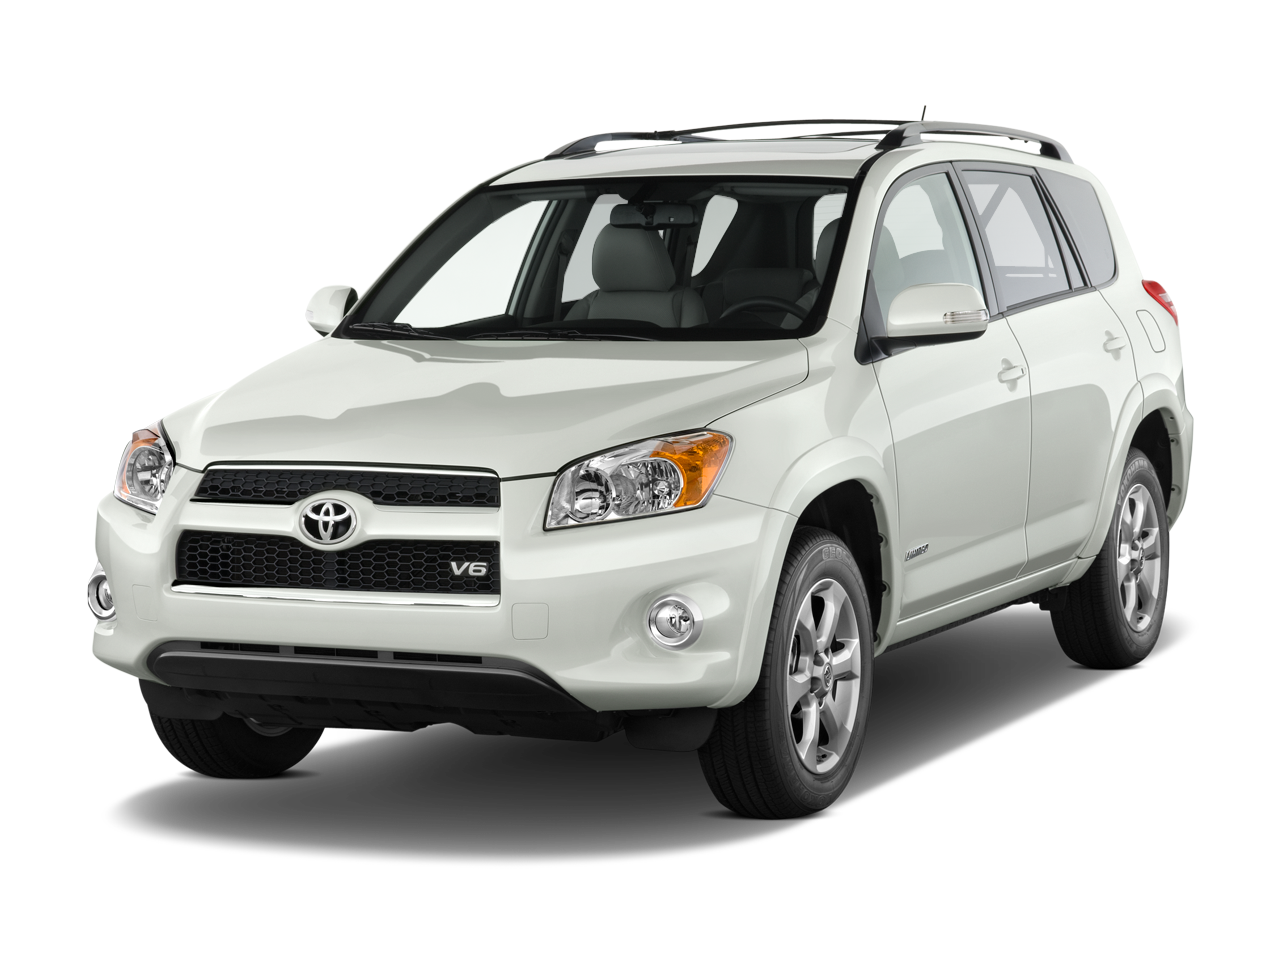 2009 toyota rav4 4x4 toyota crossover suv review automobile magazine. Black Bedroom Furniture Sets. Home Design Ideas